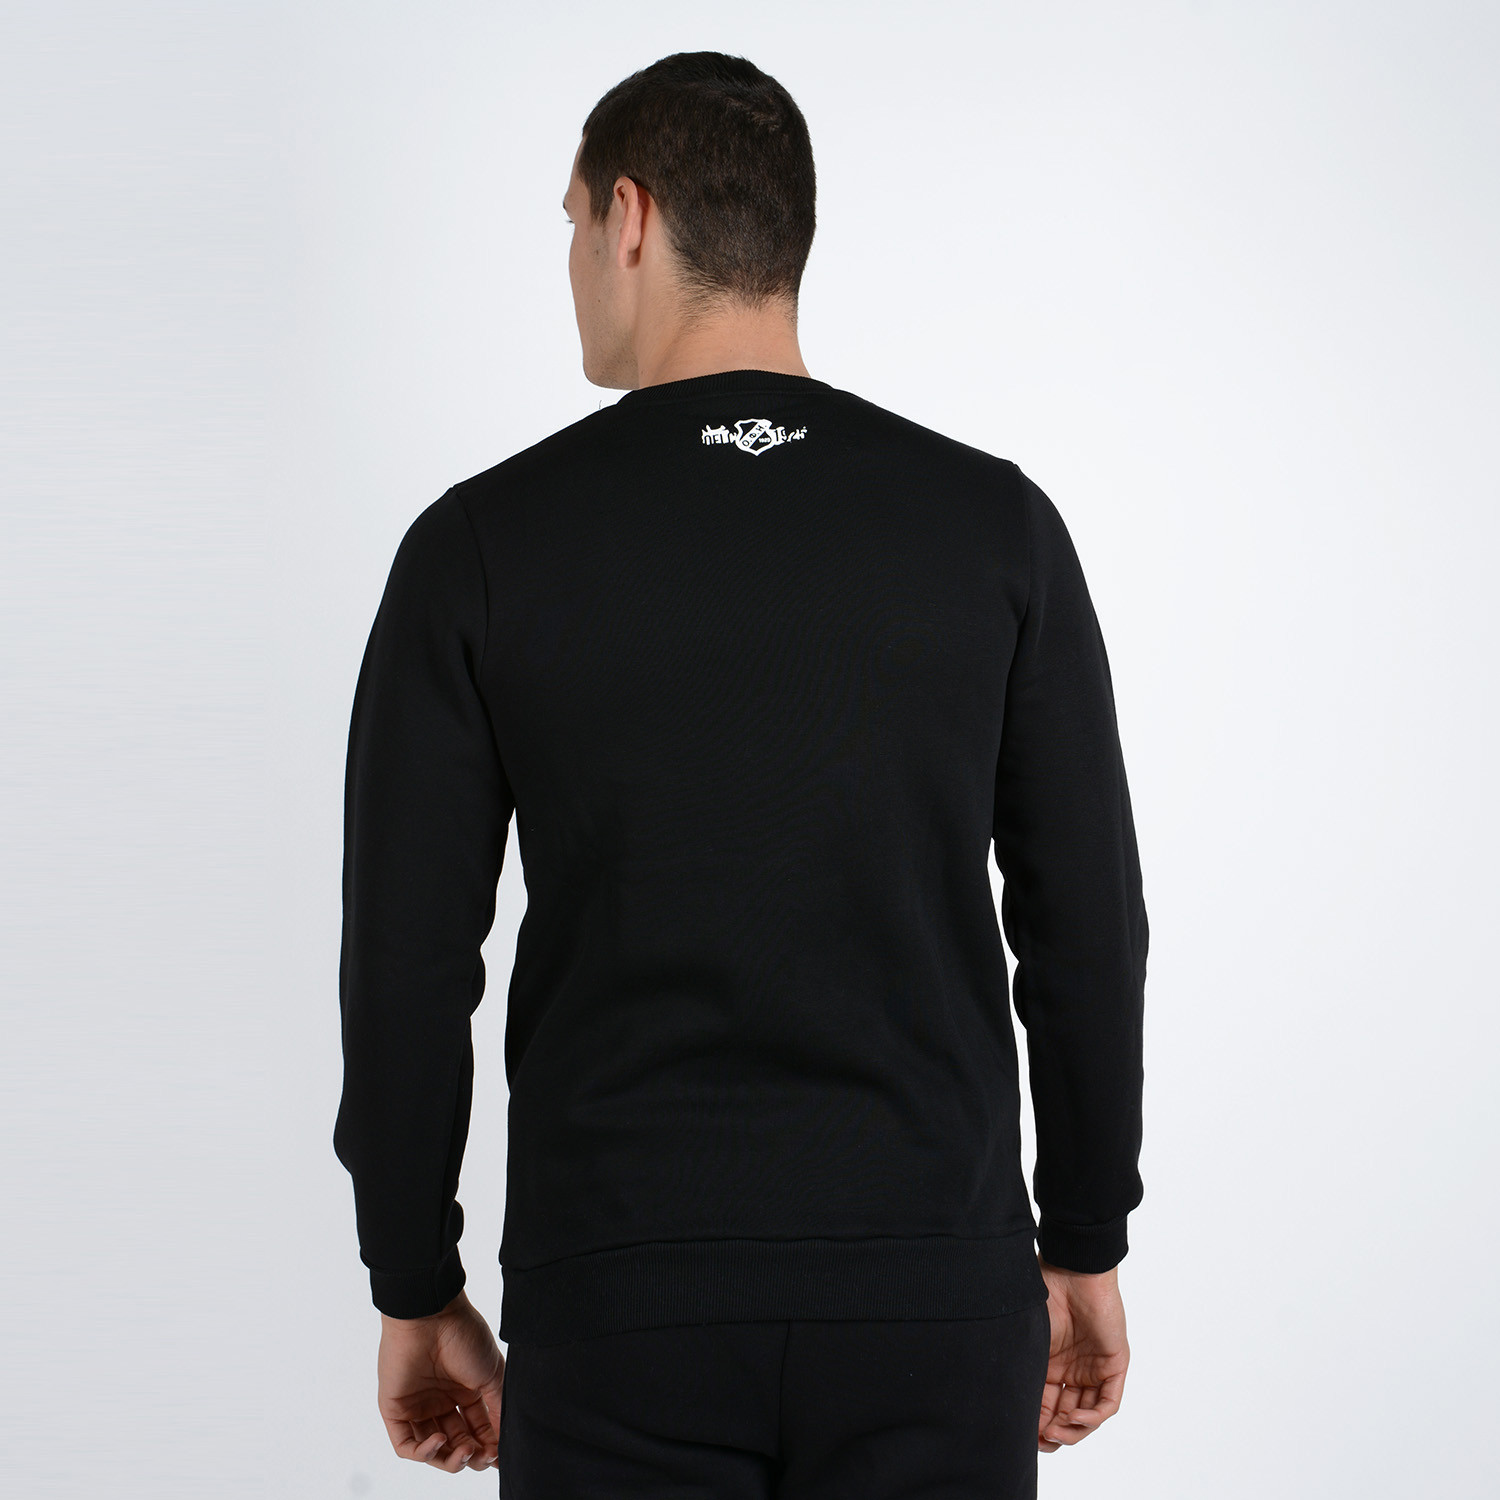 OFI F.C. 'Black&White' Men's Sweatshirt